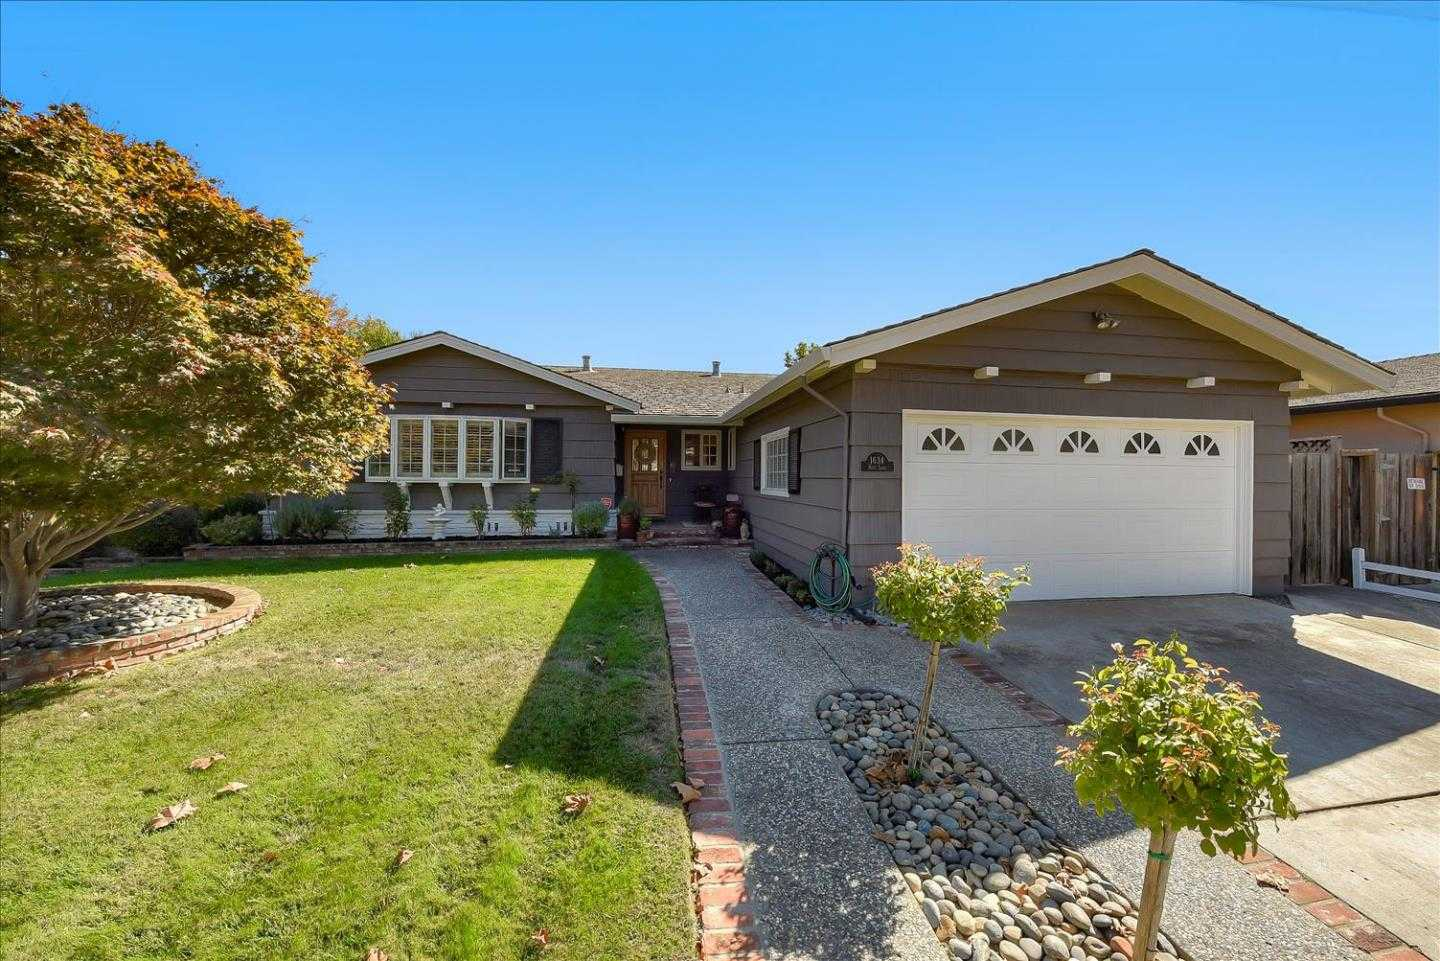 $1,595,000 - 3Br/3Ba -  for Sale in San Jose